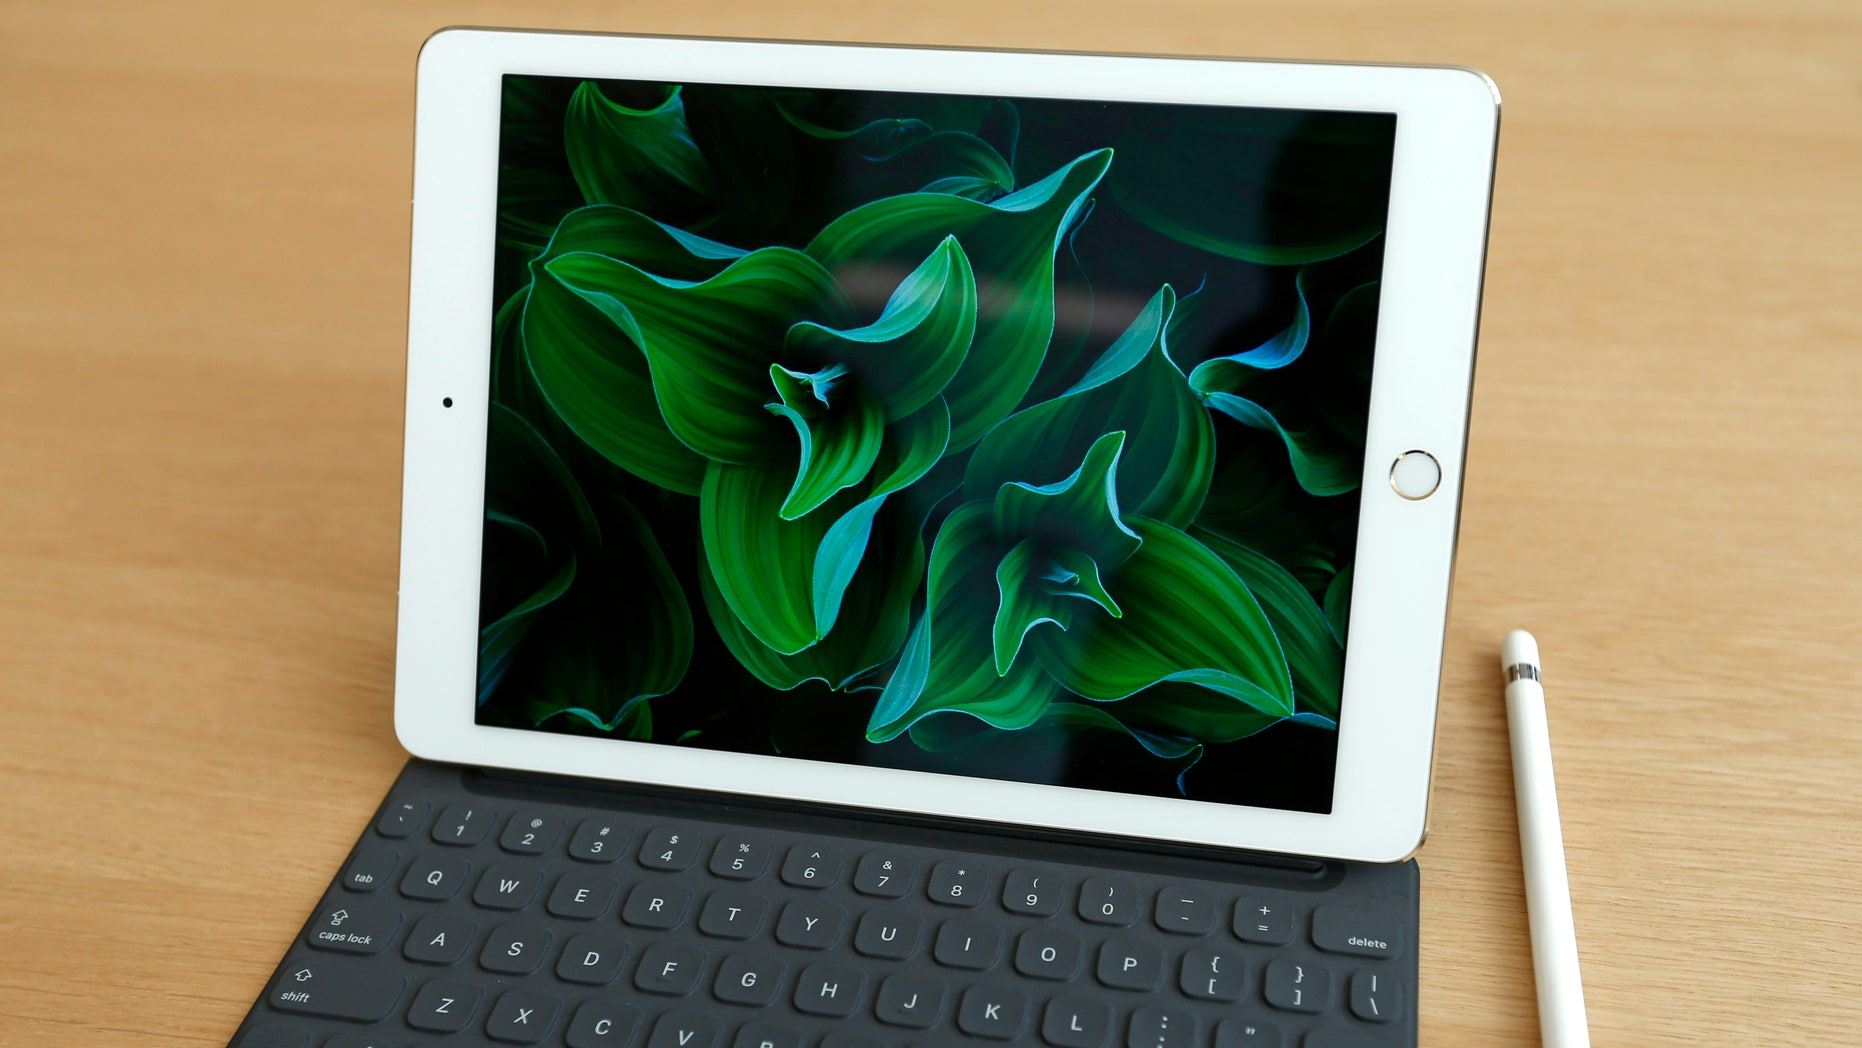 The new iPad Pro is seen on display during an event at the Apple headquarters in Cupertino, California March 21, 2016. (REUTERS/Stephen Lam)